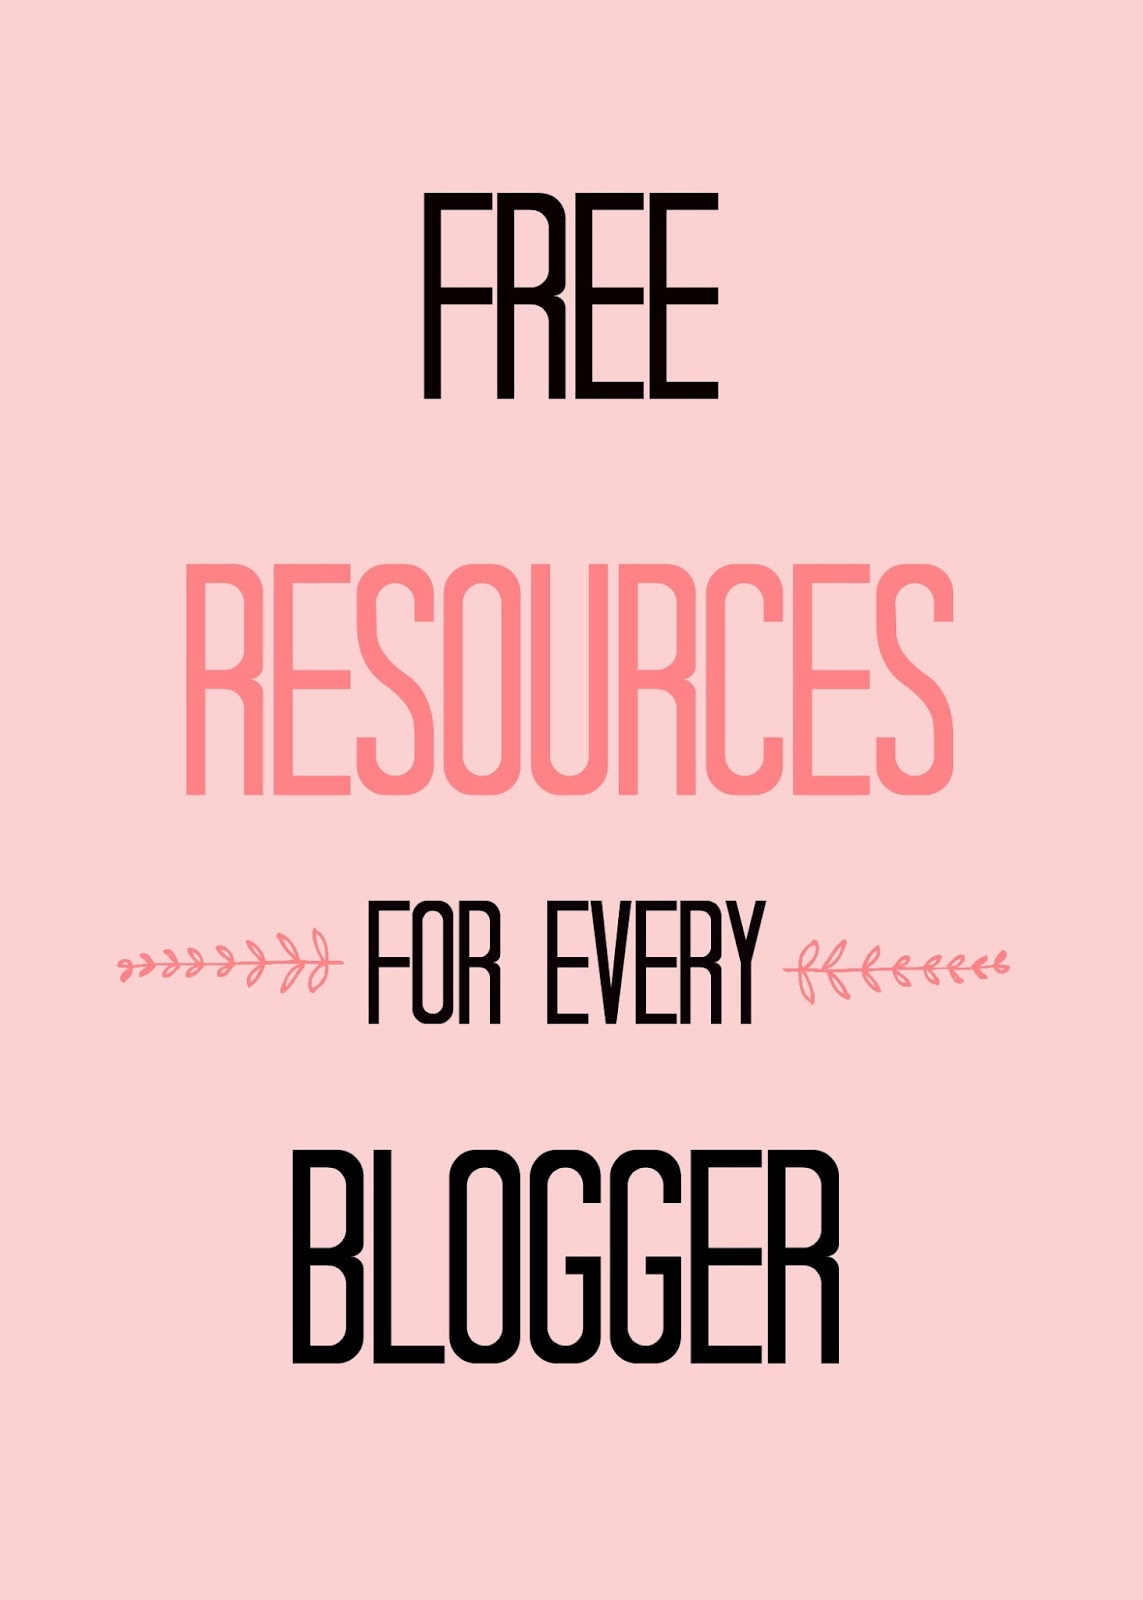 free resources for bloggers, freebies, blogging tip, free resources